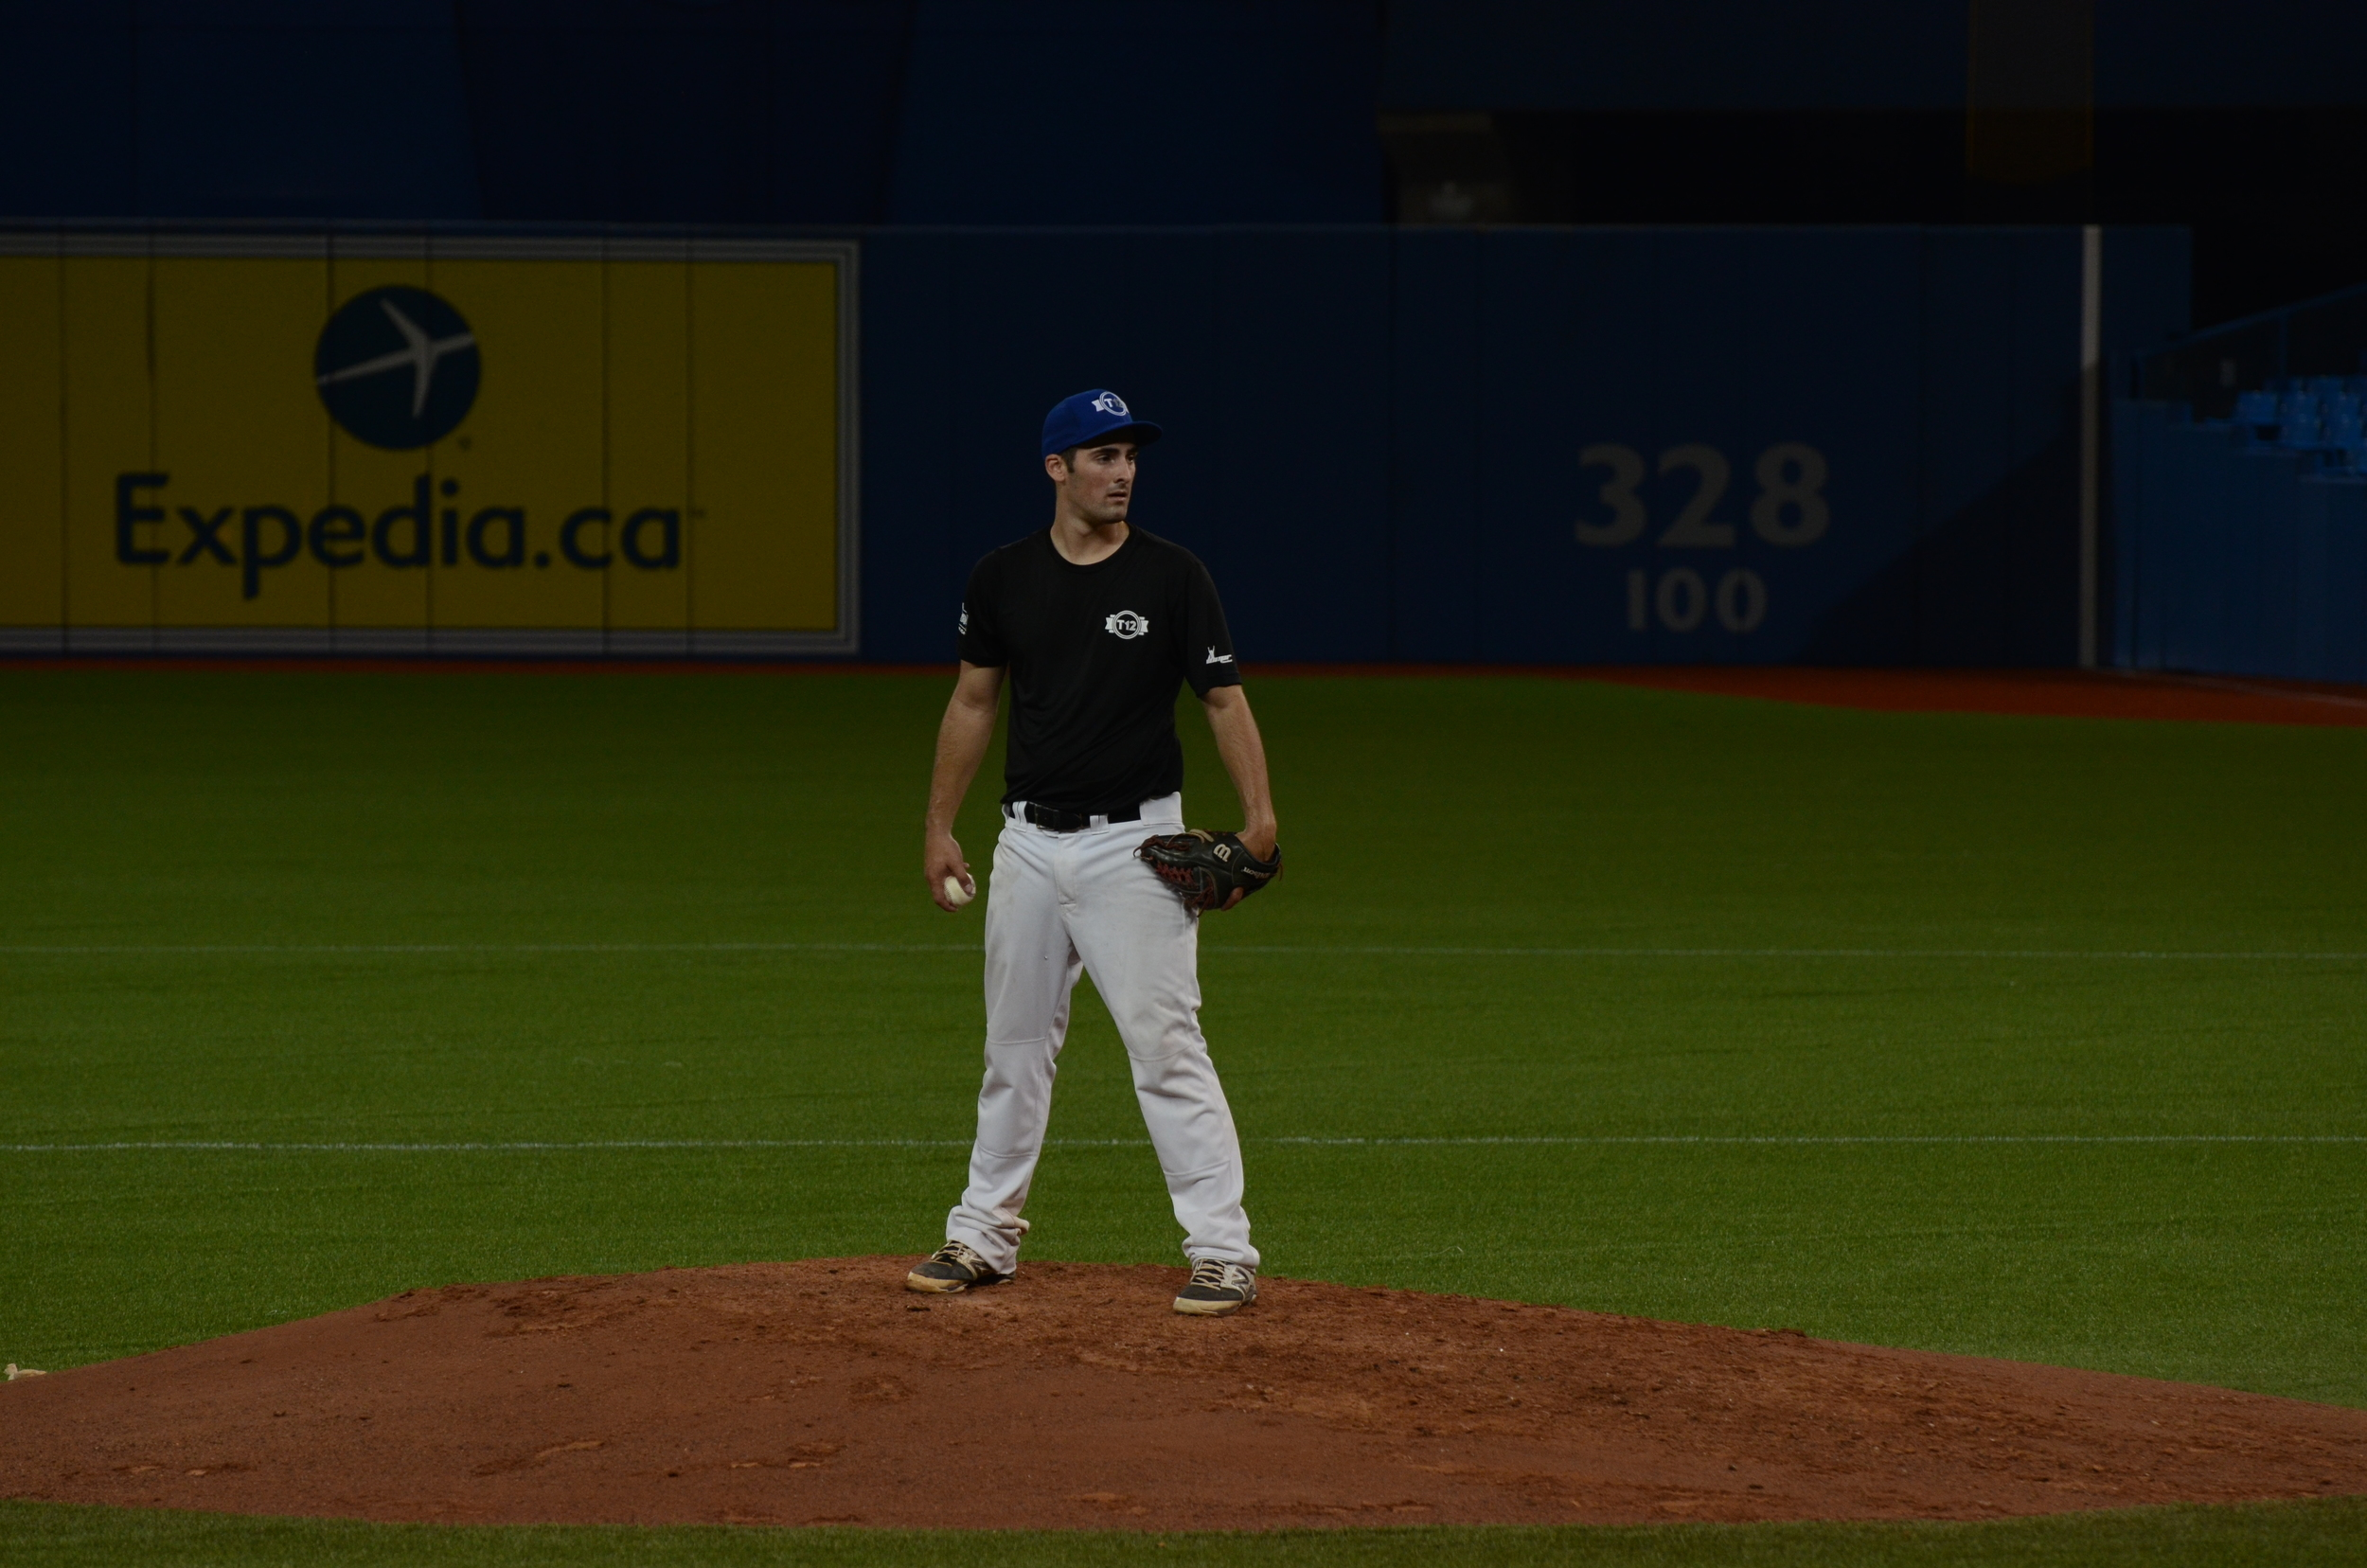 Ontario Black starting pitcher Mitchell Clark (Windsor, Ont.) of the Windsor Selects. Photo Credit: Jonathan Soveta